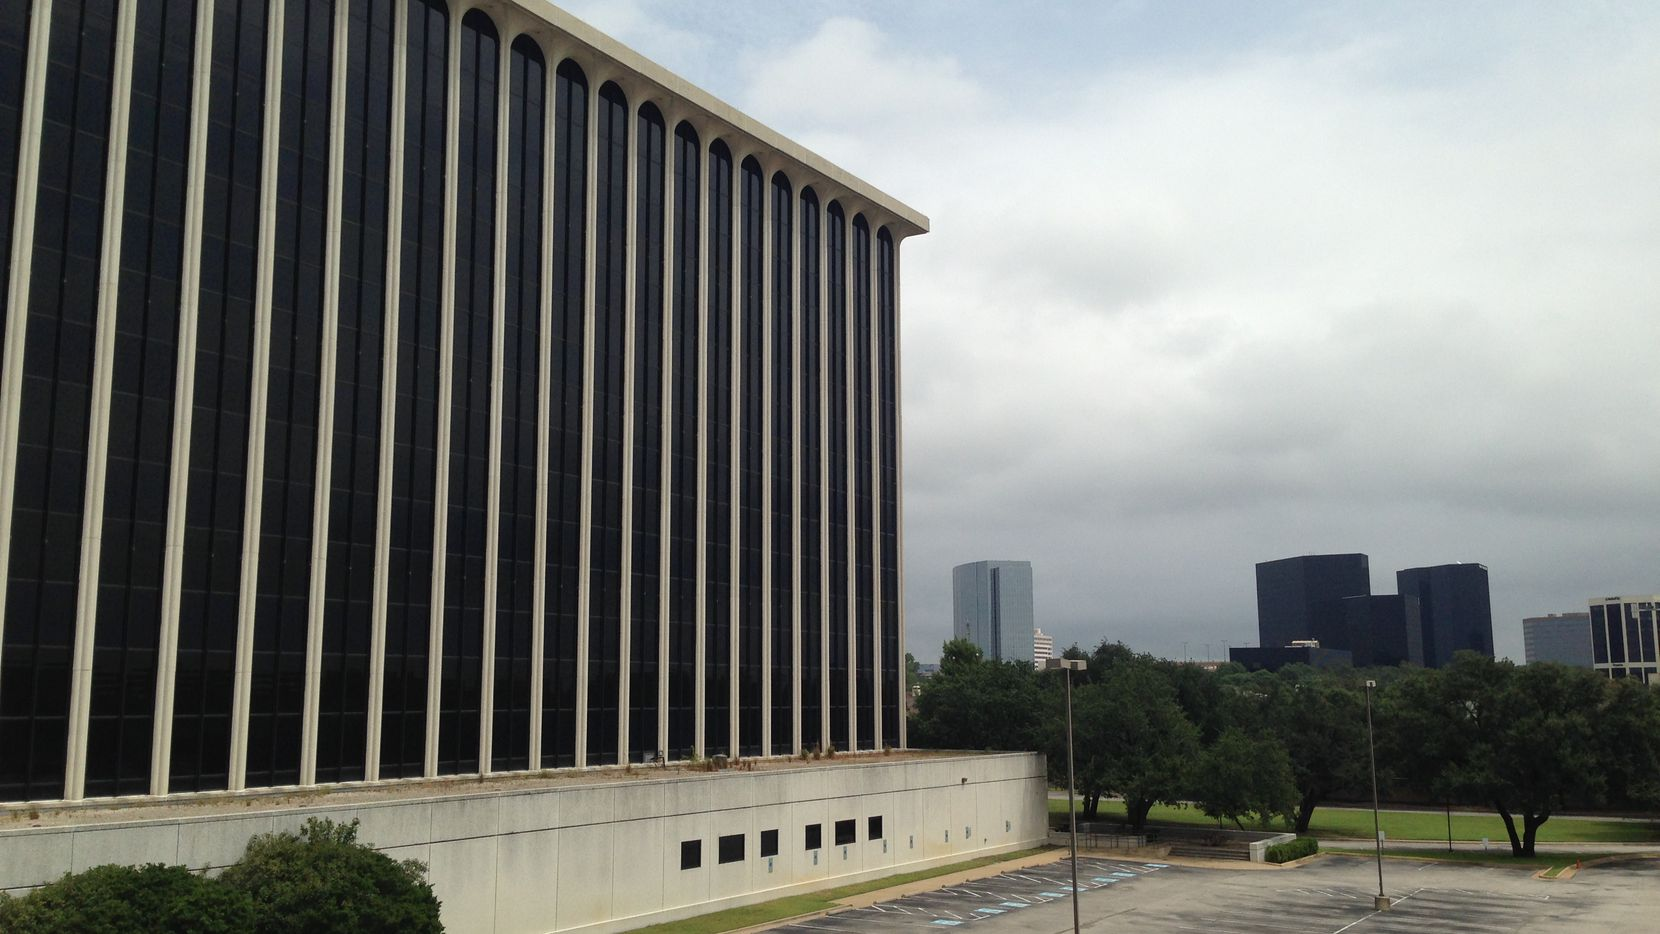 The vacant CompuCom campus was originally built for Electronic Data Systems.